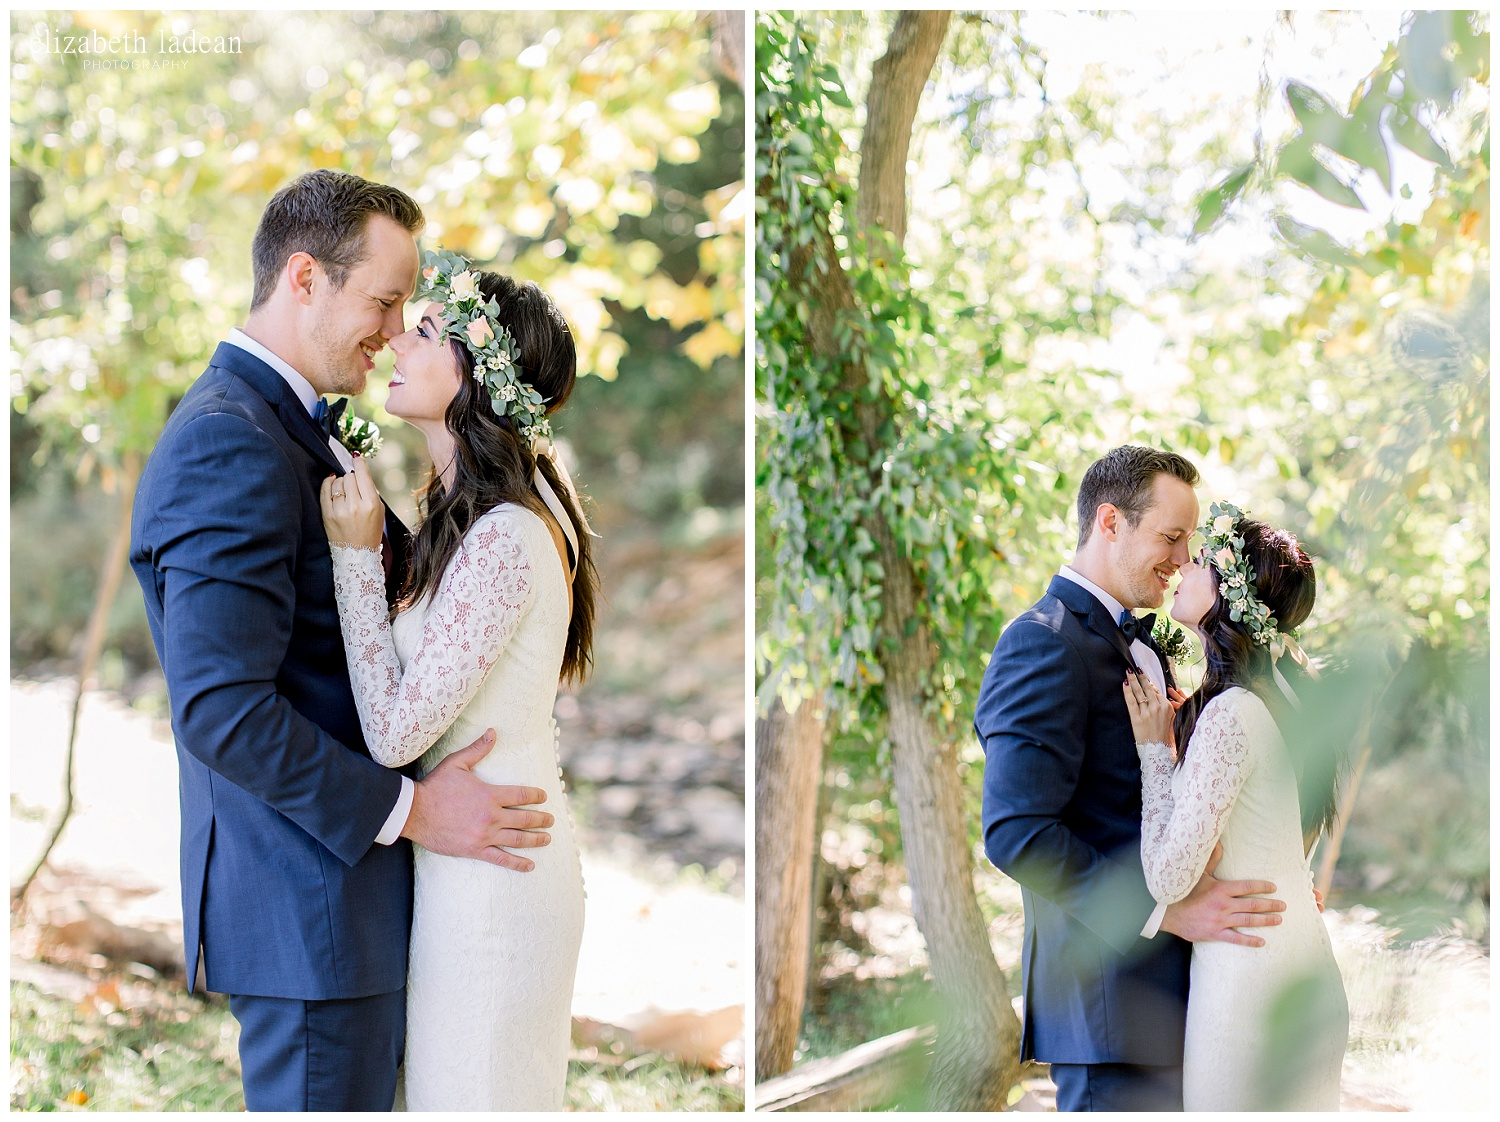 Willow-Creek-Blush-and-Blues-Outdoor-Wedding-Photography-S+Z2018-elizabeth-ladean-photography-photo_0531.jpg